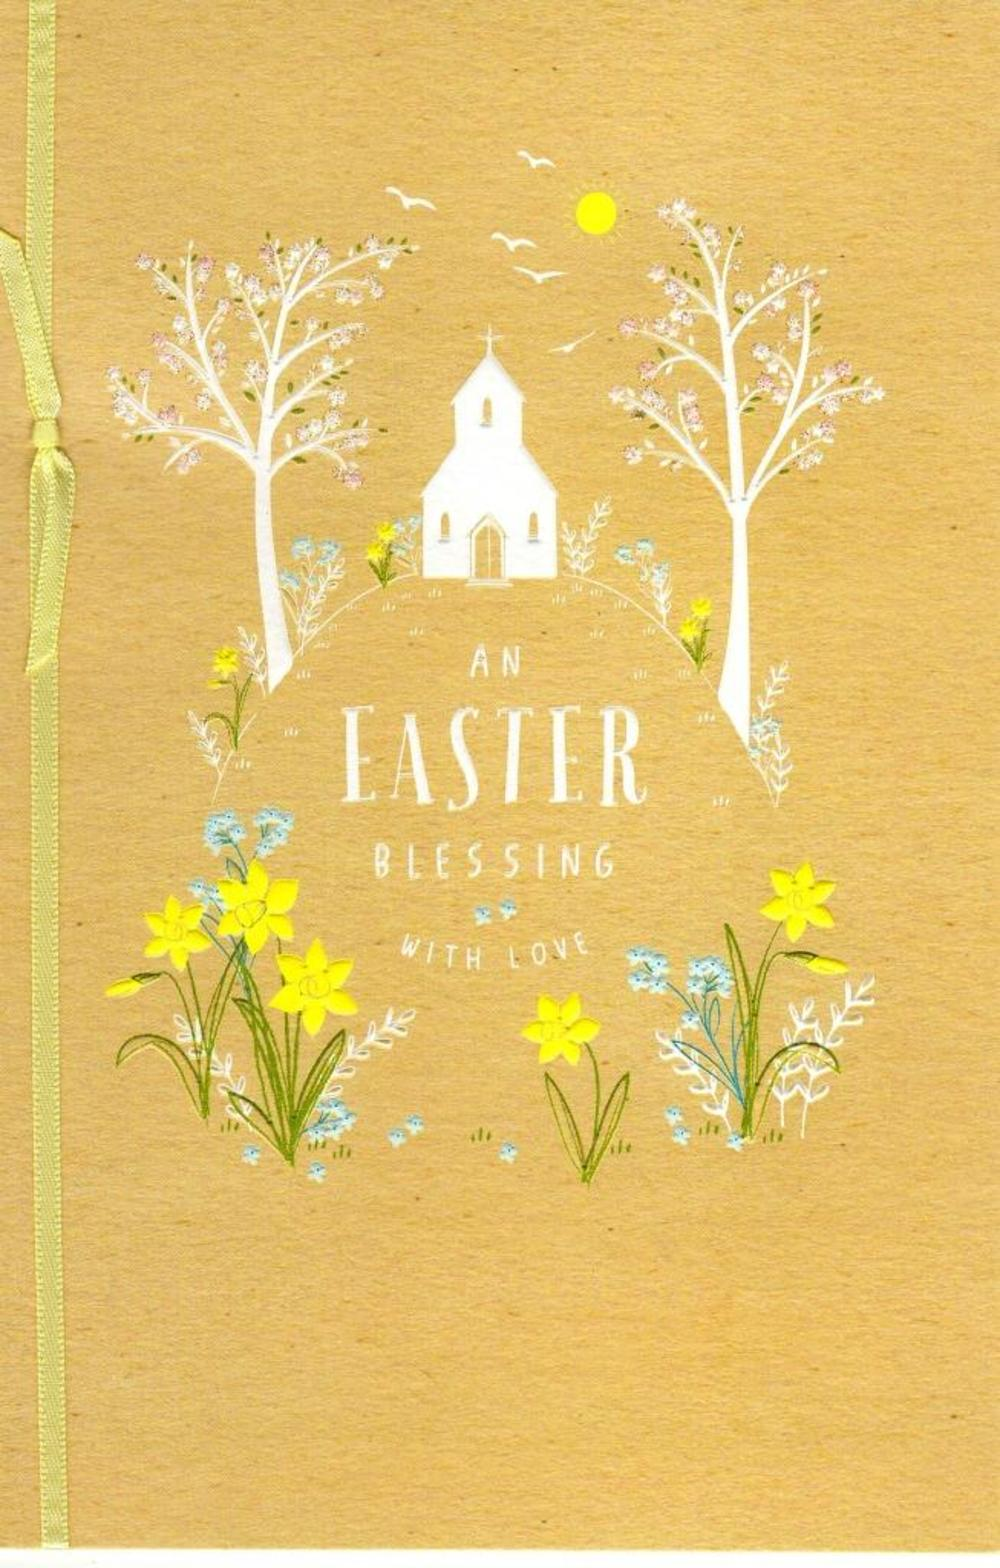 An Easter Blessing Pretty Religious Greeting Card